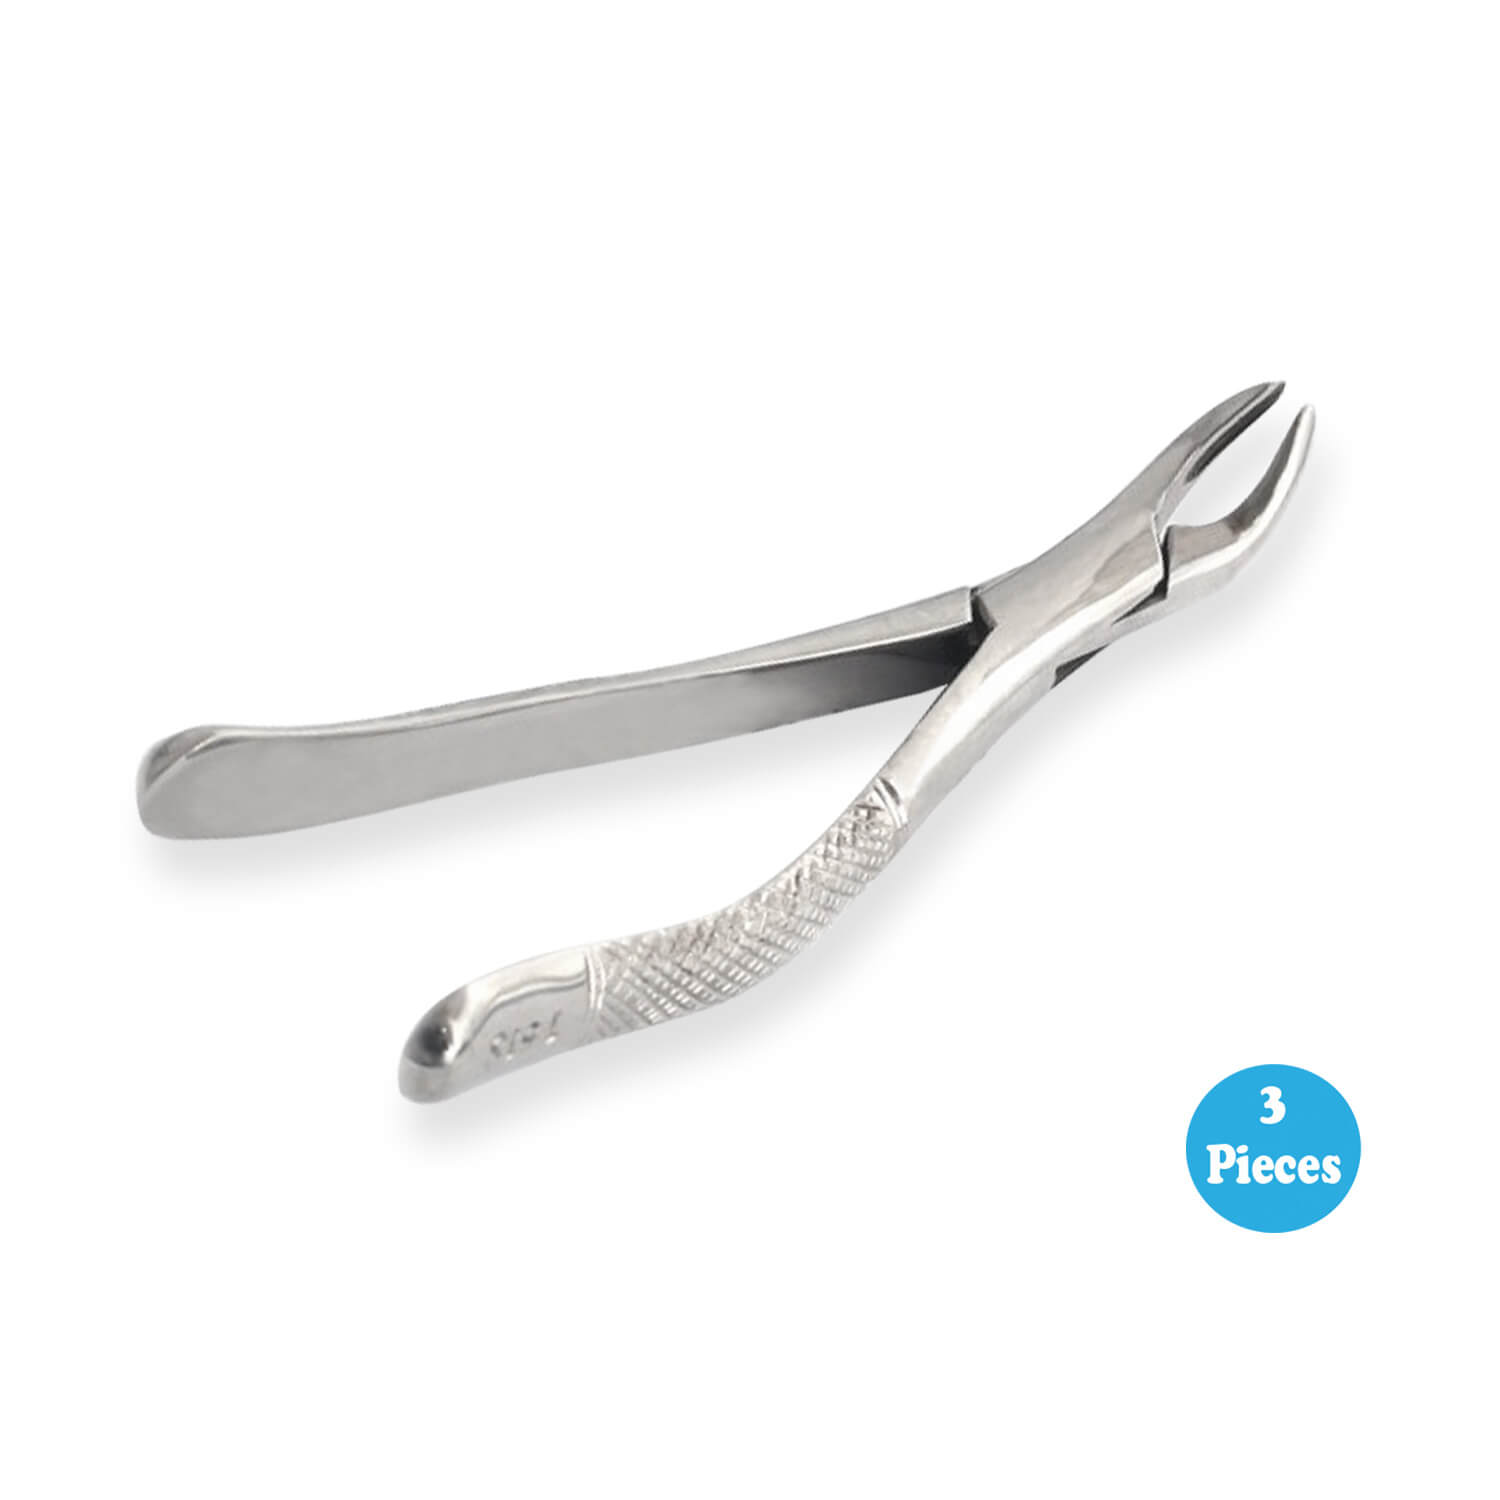 3 Pedo Extracting forceps Dental Surgical Instrument 151S